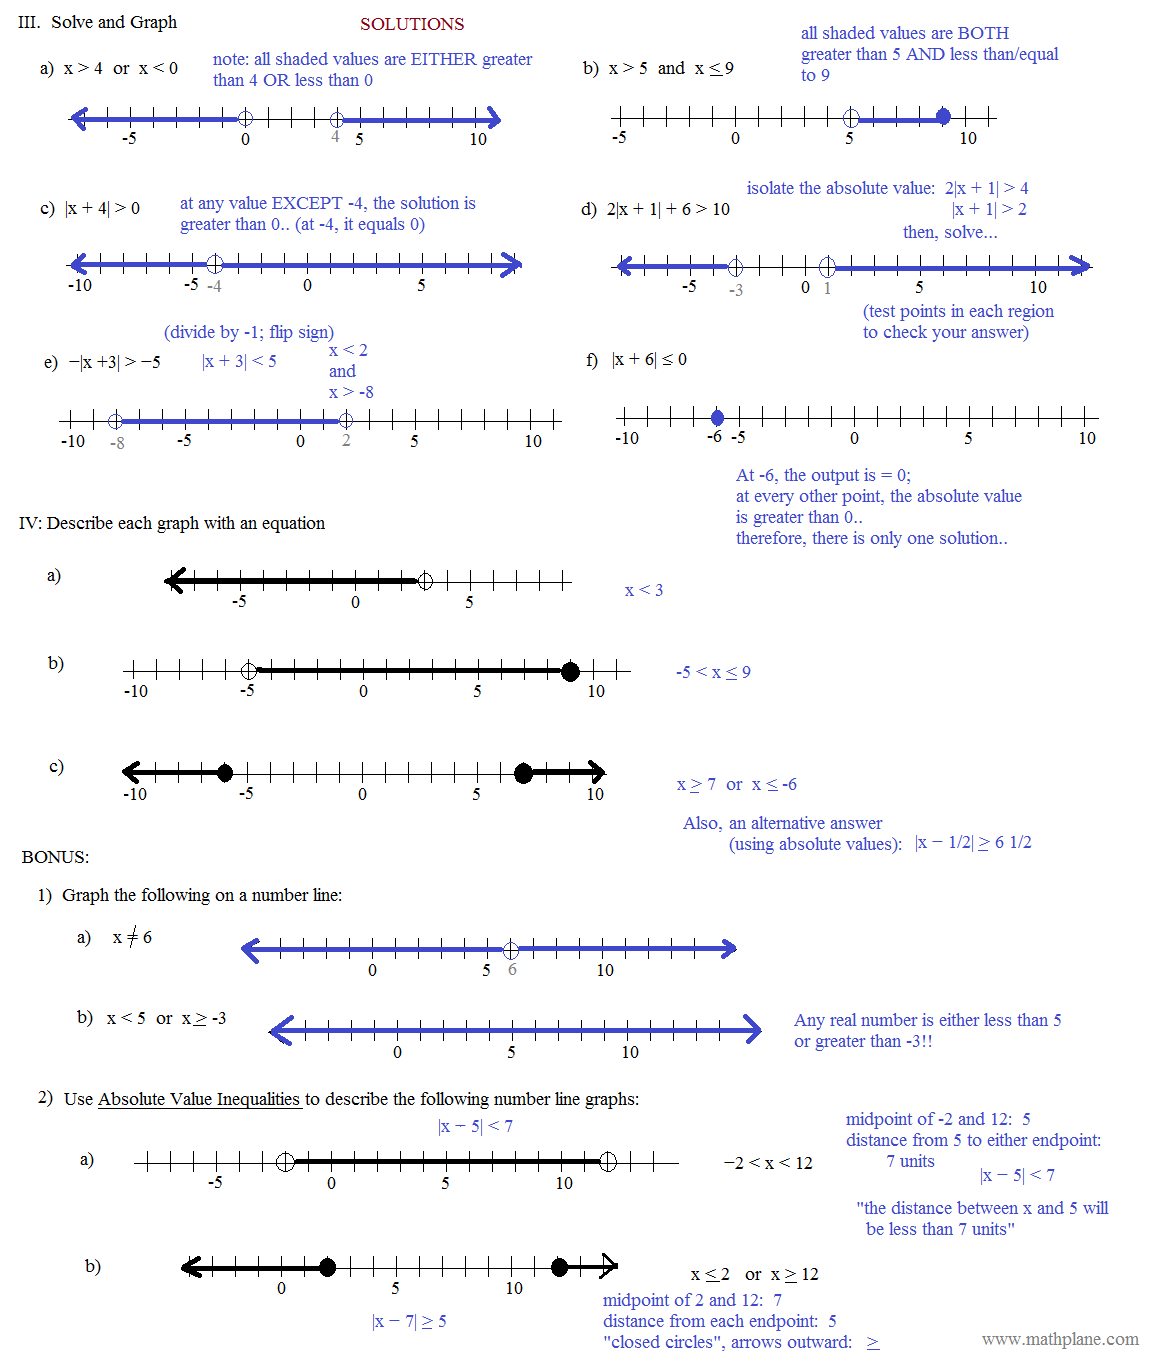 Worksheets Graphing Inequalities On A Number Line Worksheet math plane absolute value and inequalities quiz values number line 2 solutions